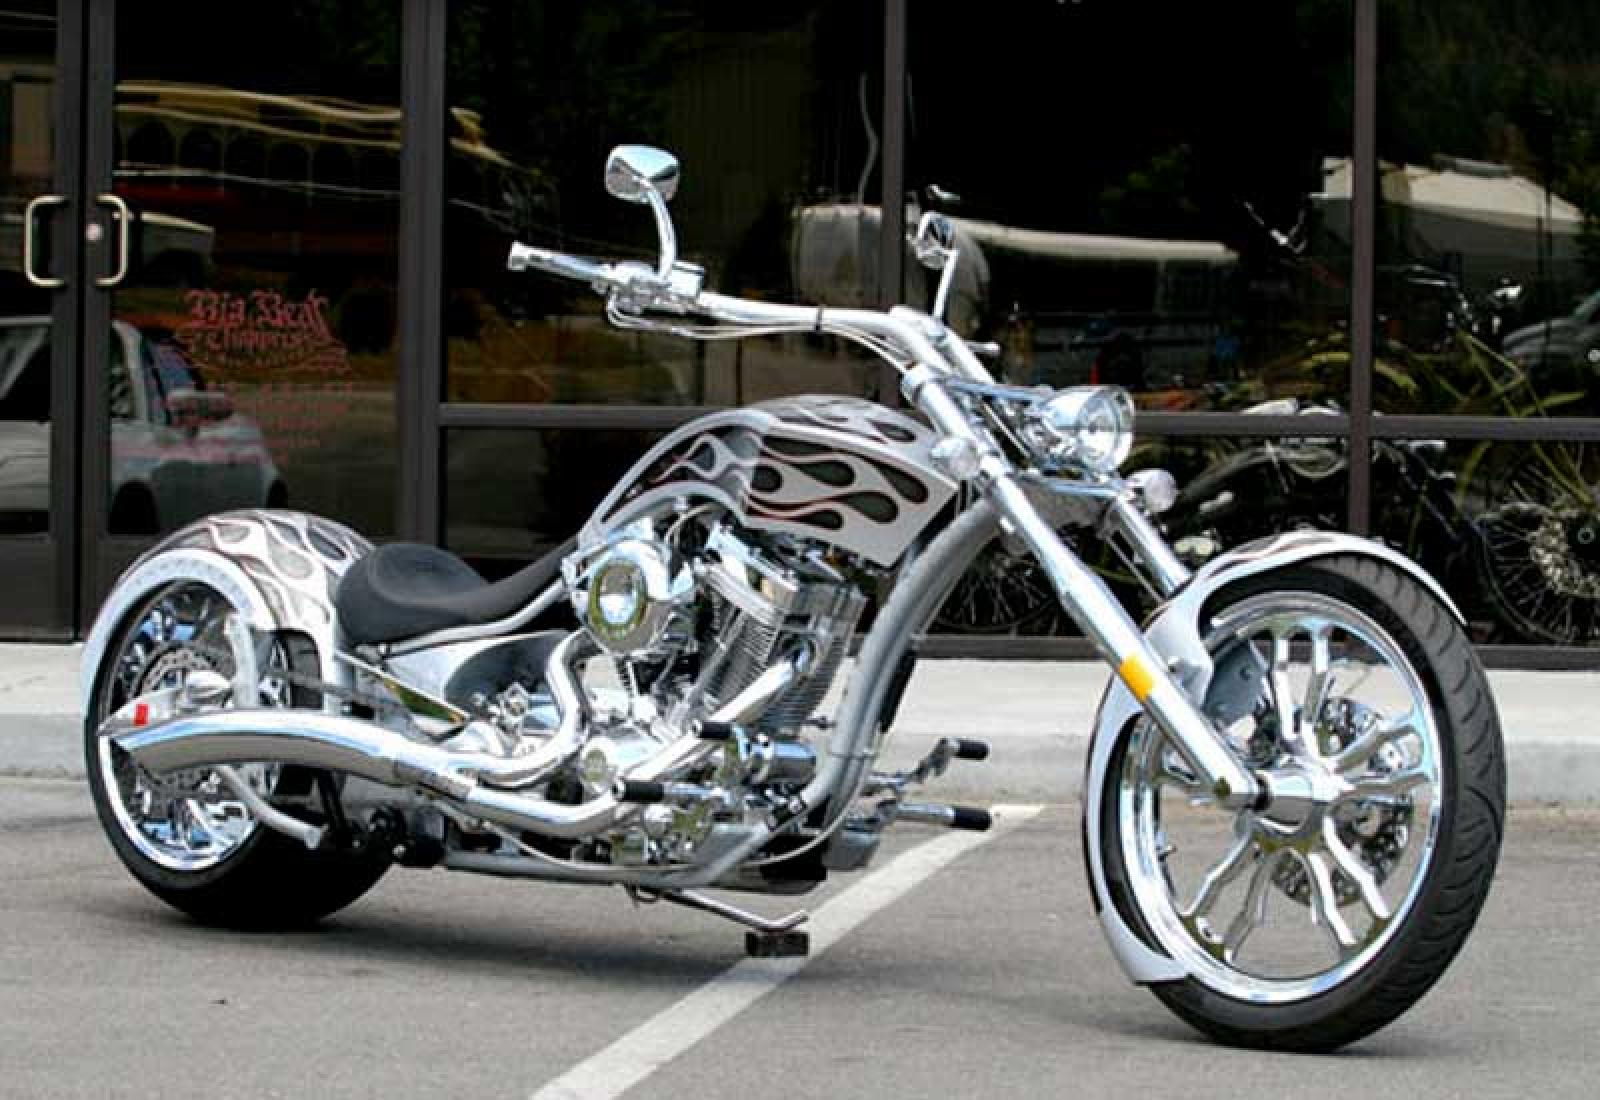 Big Bear Choppers Sled ProStreet 114 X-Wedge 2009 images #63883